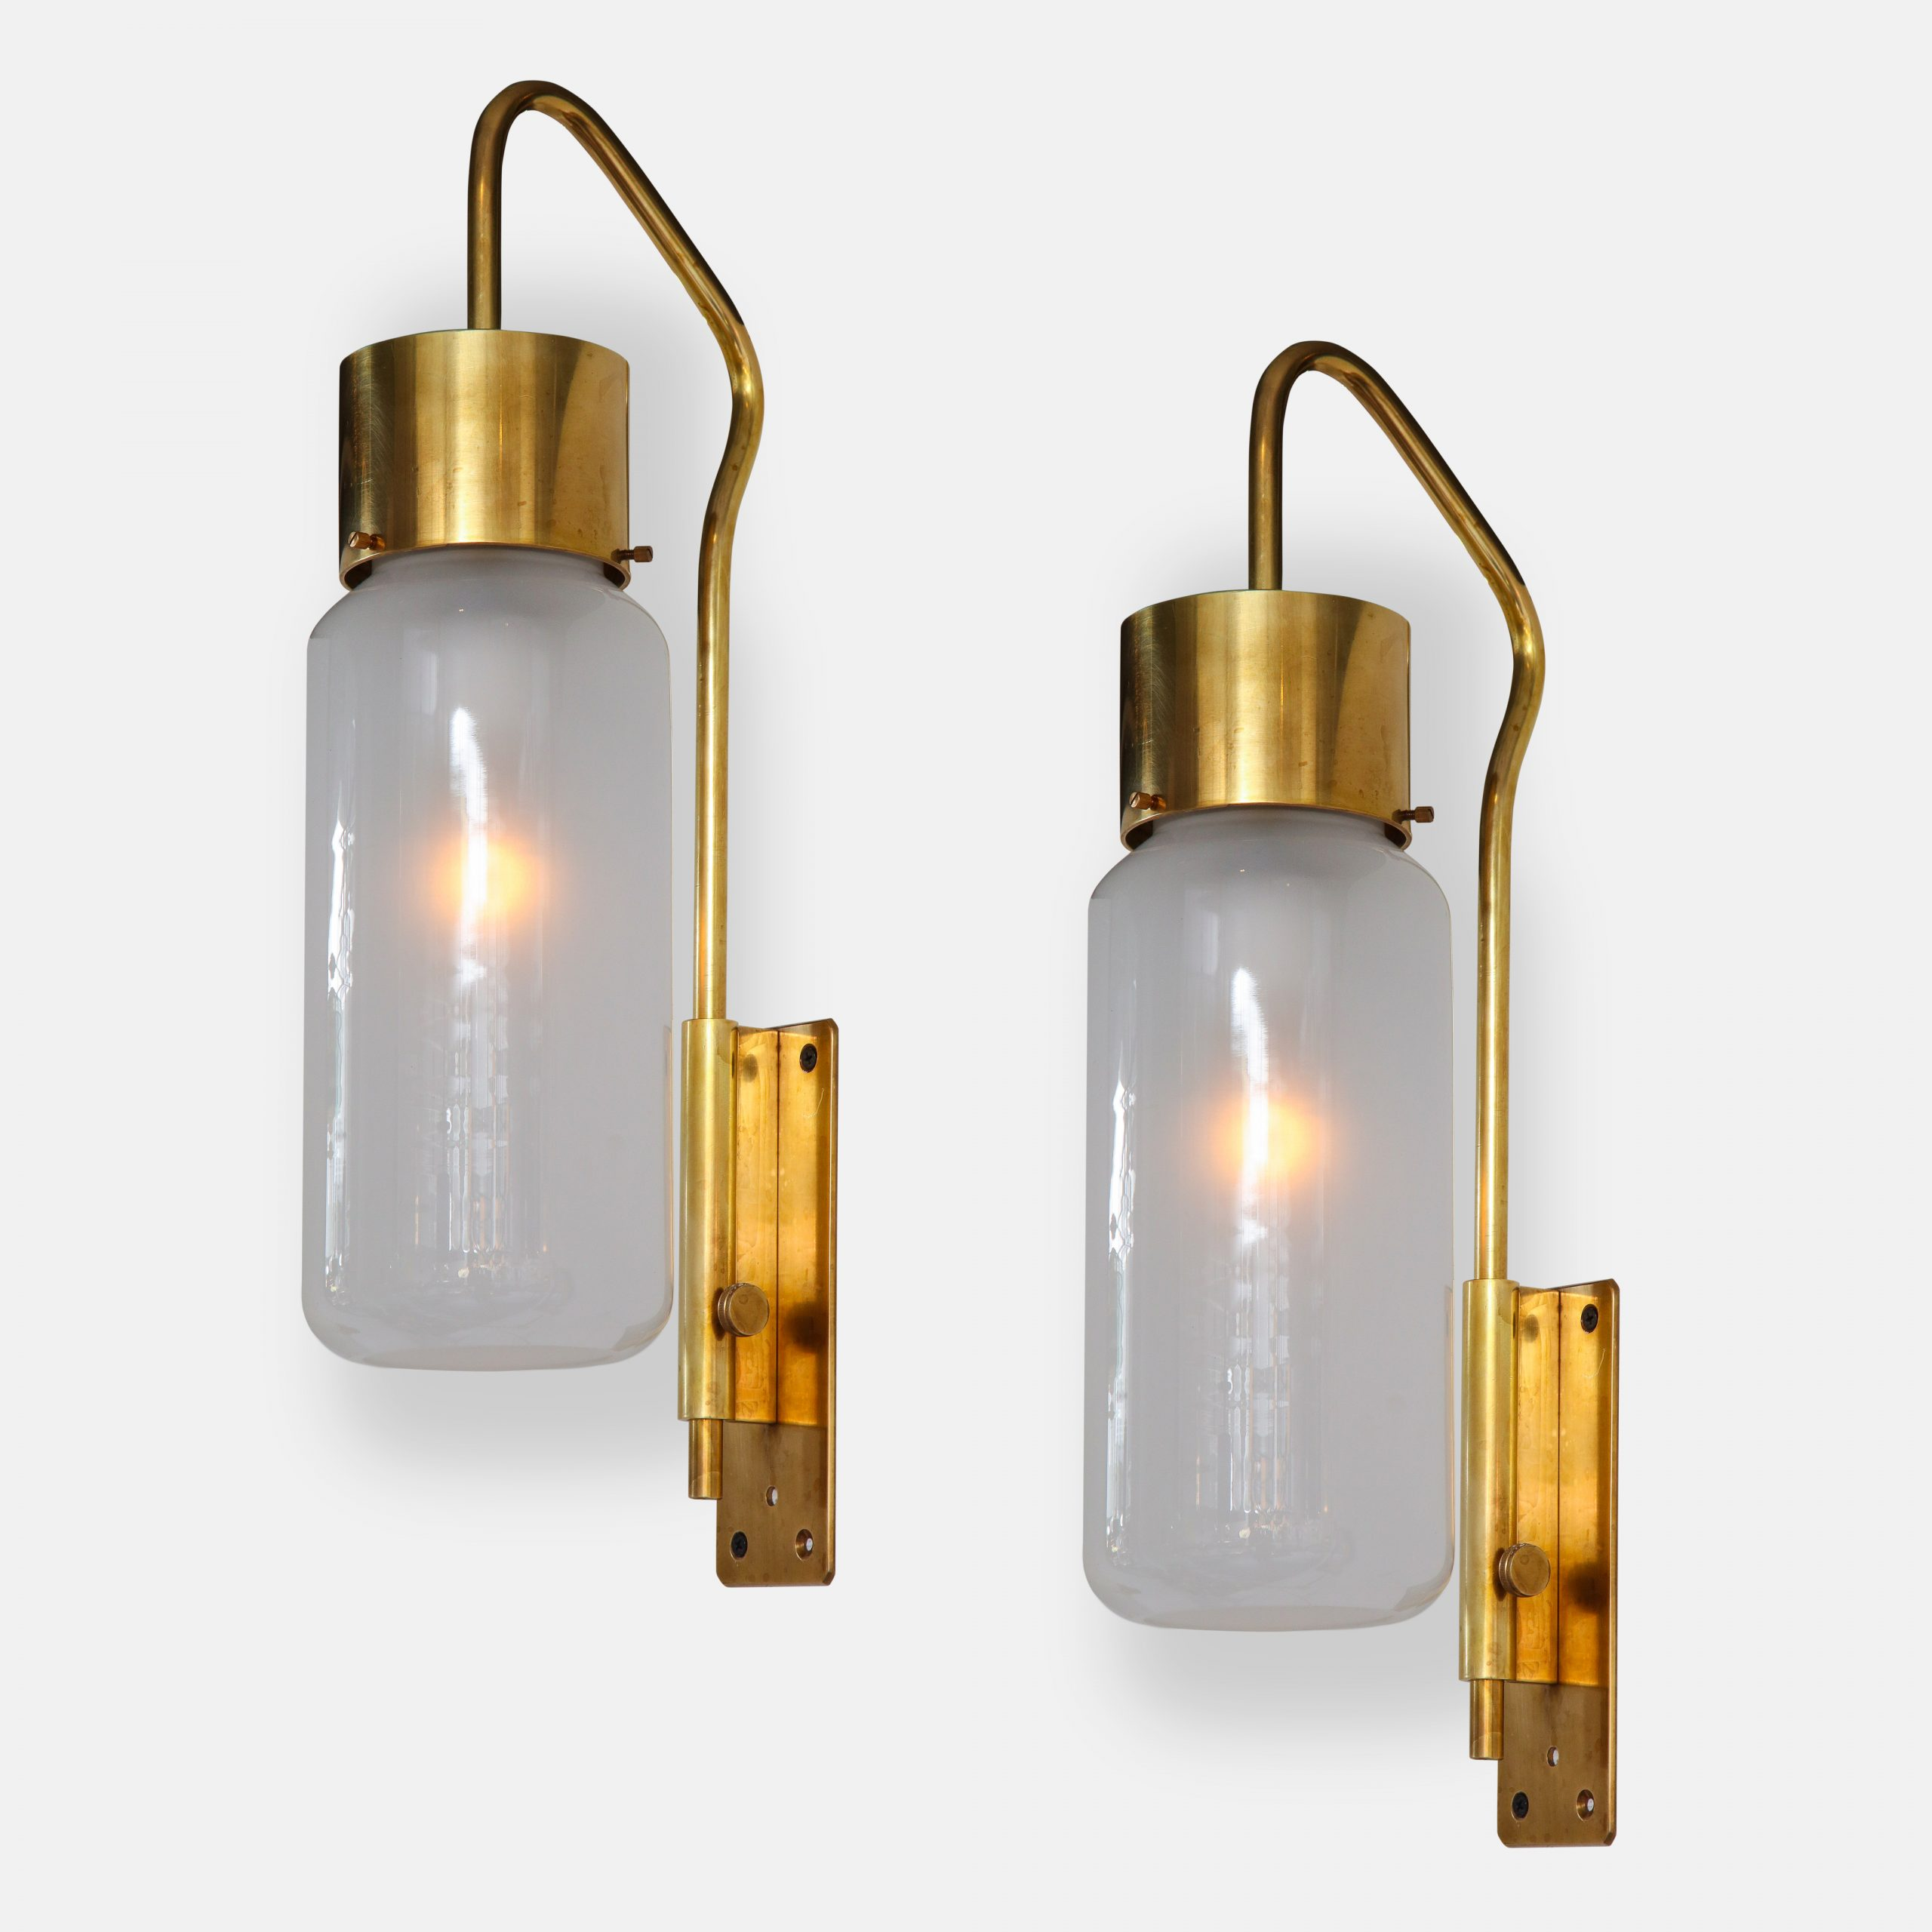 Pair of Wall Lights Model LP10 Bidone by Luigi Caccia Dominioni for Azucena | soyun k.